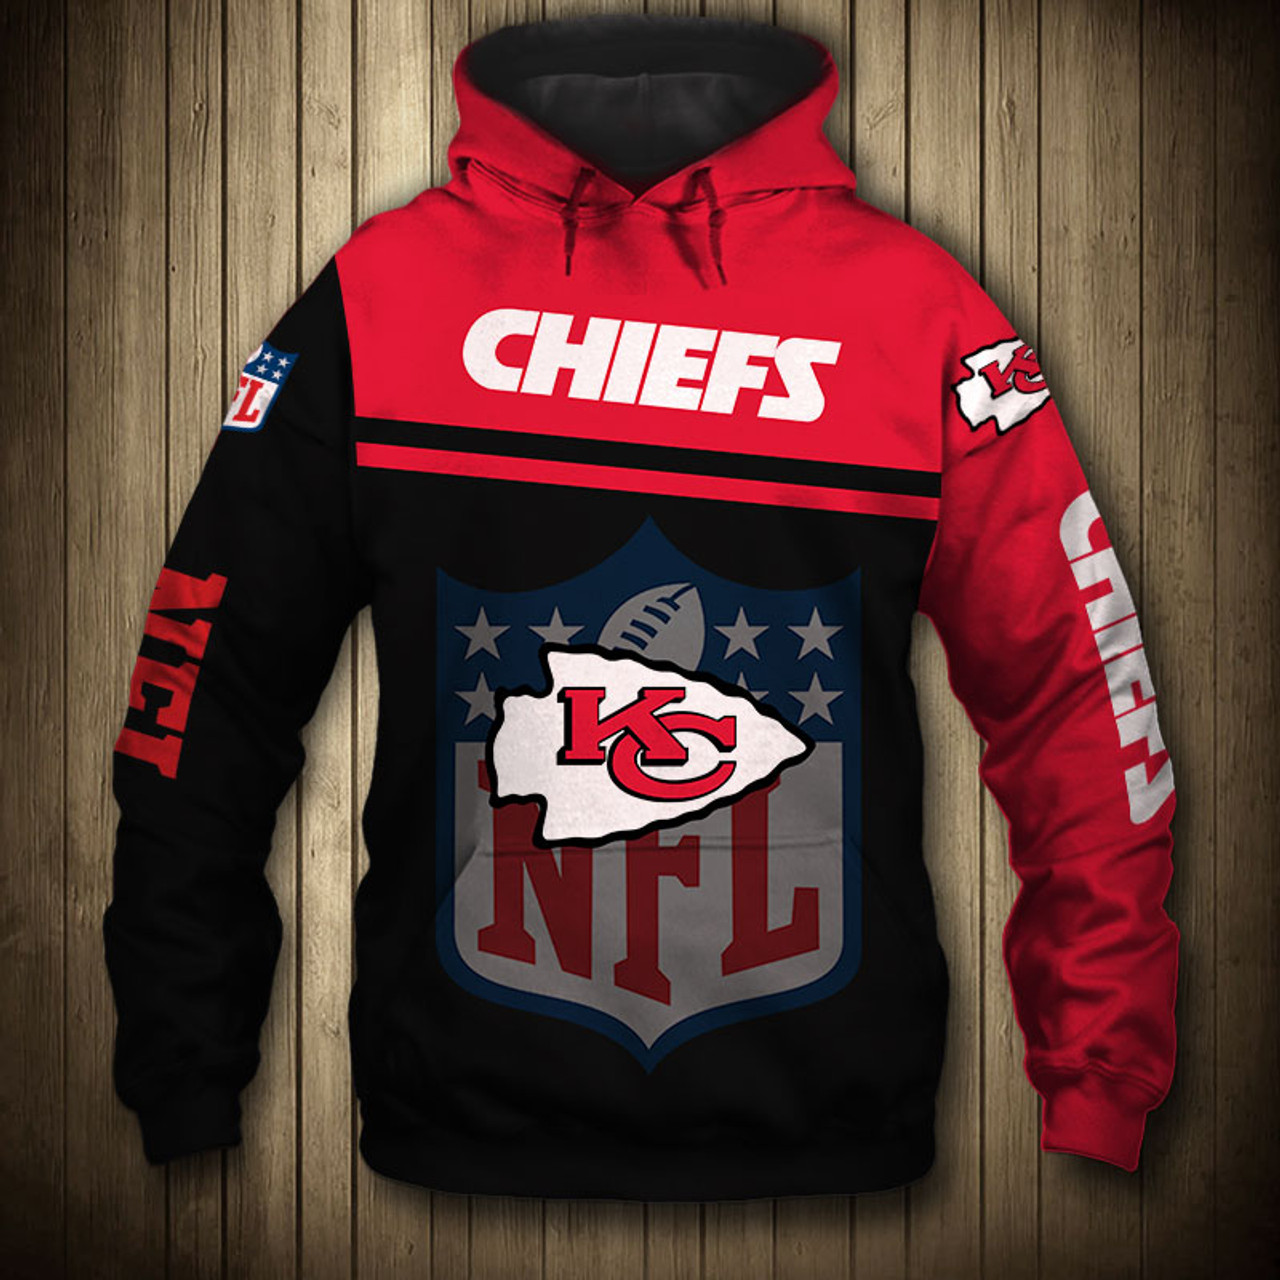 sports shoes 2612e b655e **(OFFICIAL-N.F.L.KANSAS-CITY-CHIEFS-PULLOVER-HOODIES/3D-CUSTOM-CHIEFS-LOGOS  & OFFICIAL-CHIEFS-TEAM-COLORS/CUSTOM-3D-DETAILED-GRAPHIC-PRINTED-DOUBLE-S...